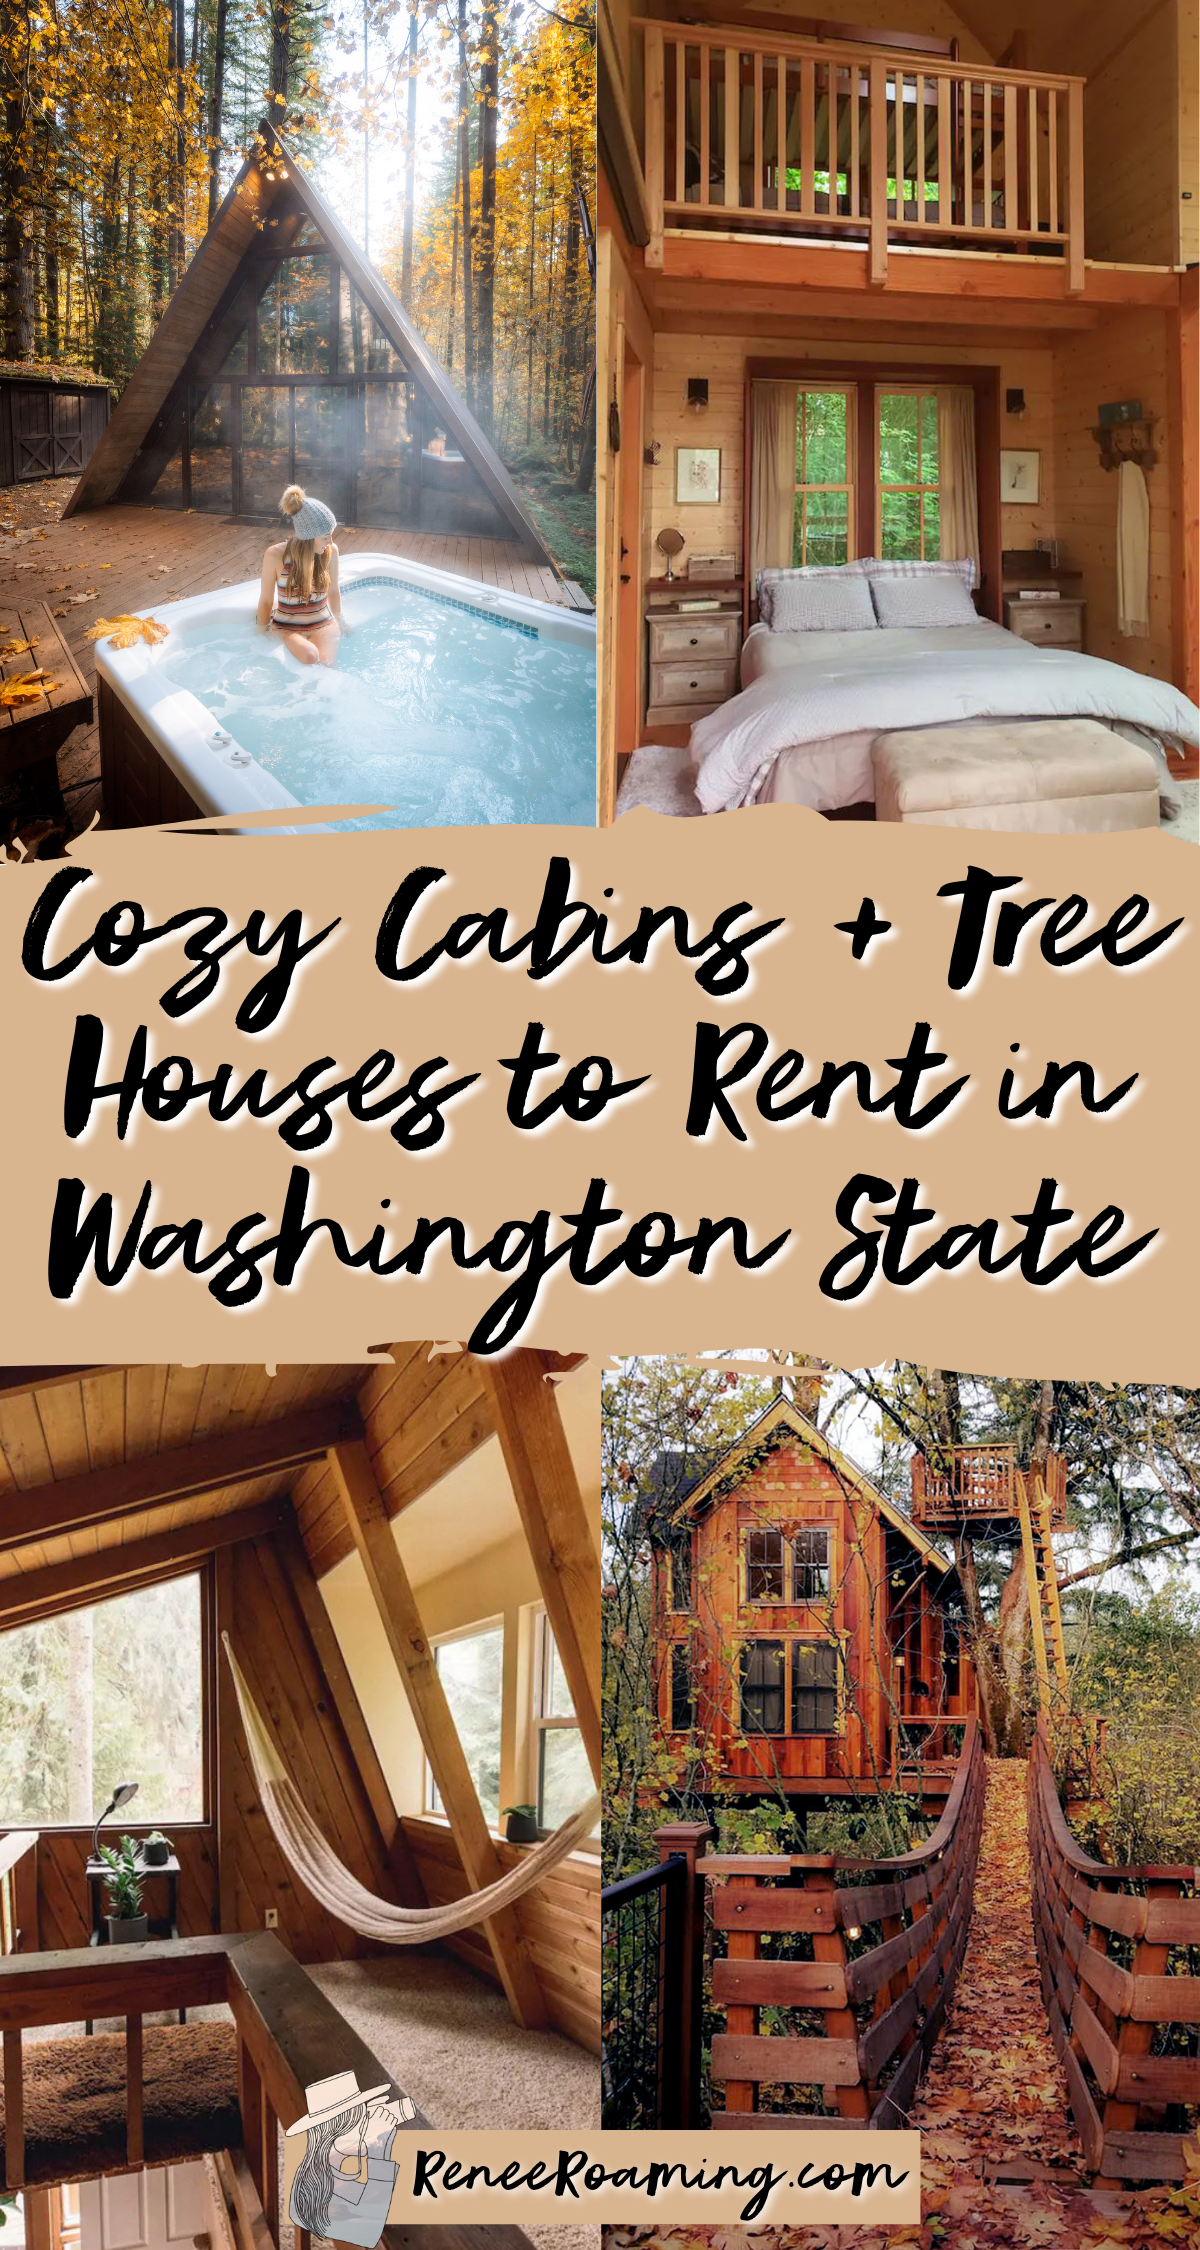 24 Cabins and Treehouses to Rent in Washington Sta